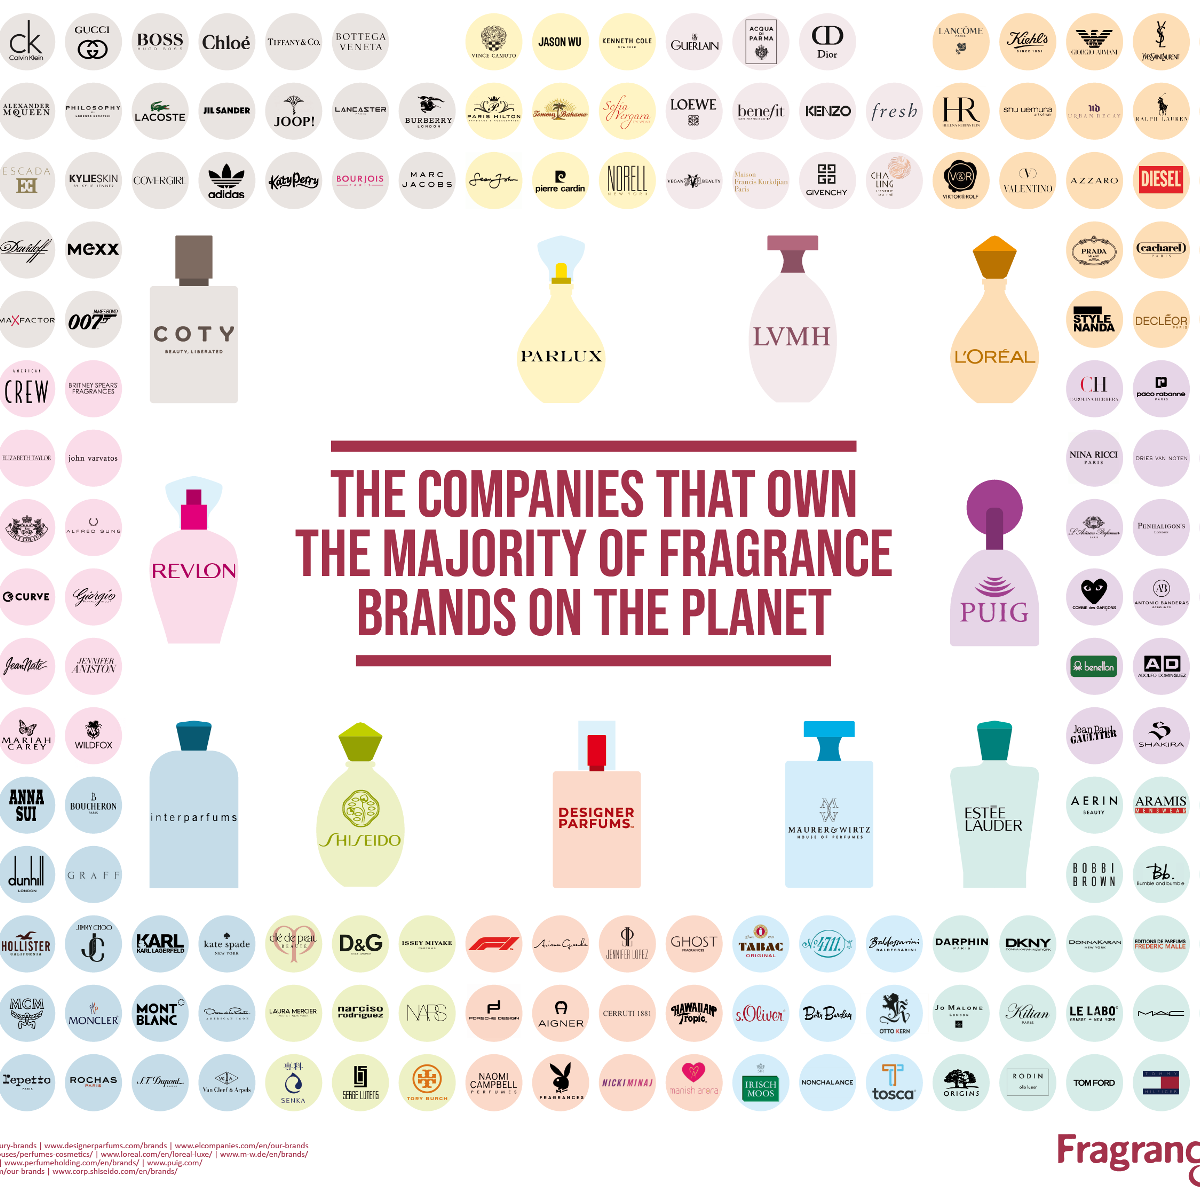 companies that own fragrance brands